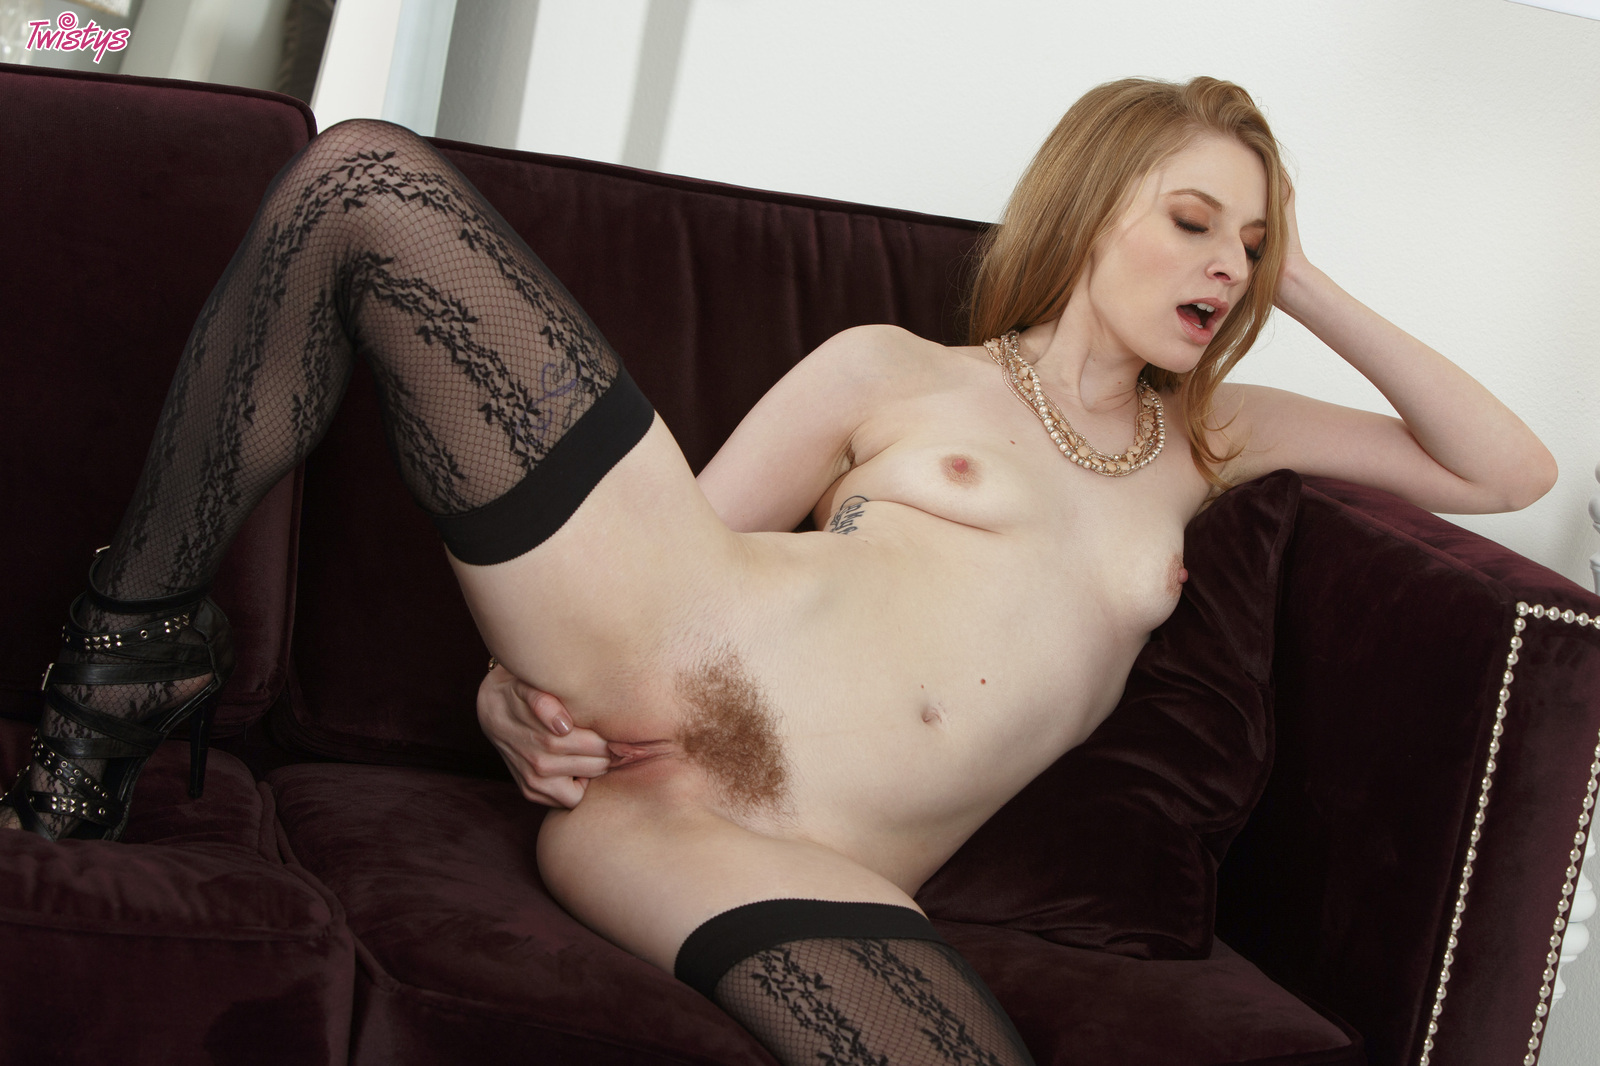 Milf loves young cock